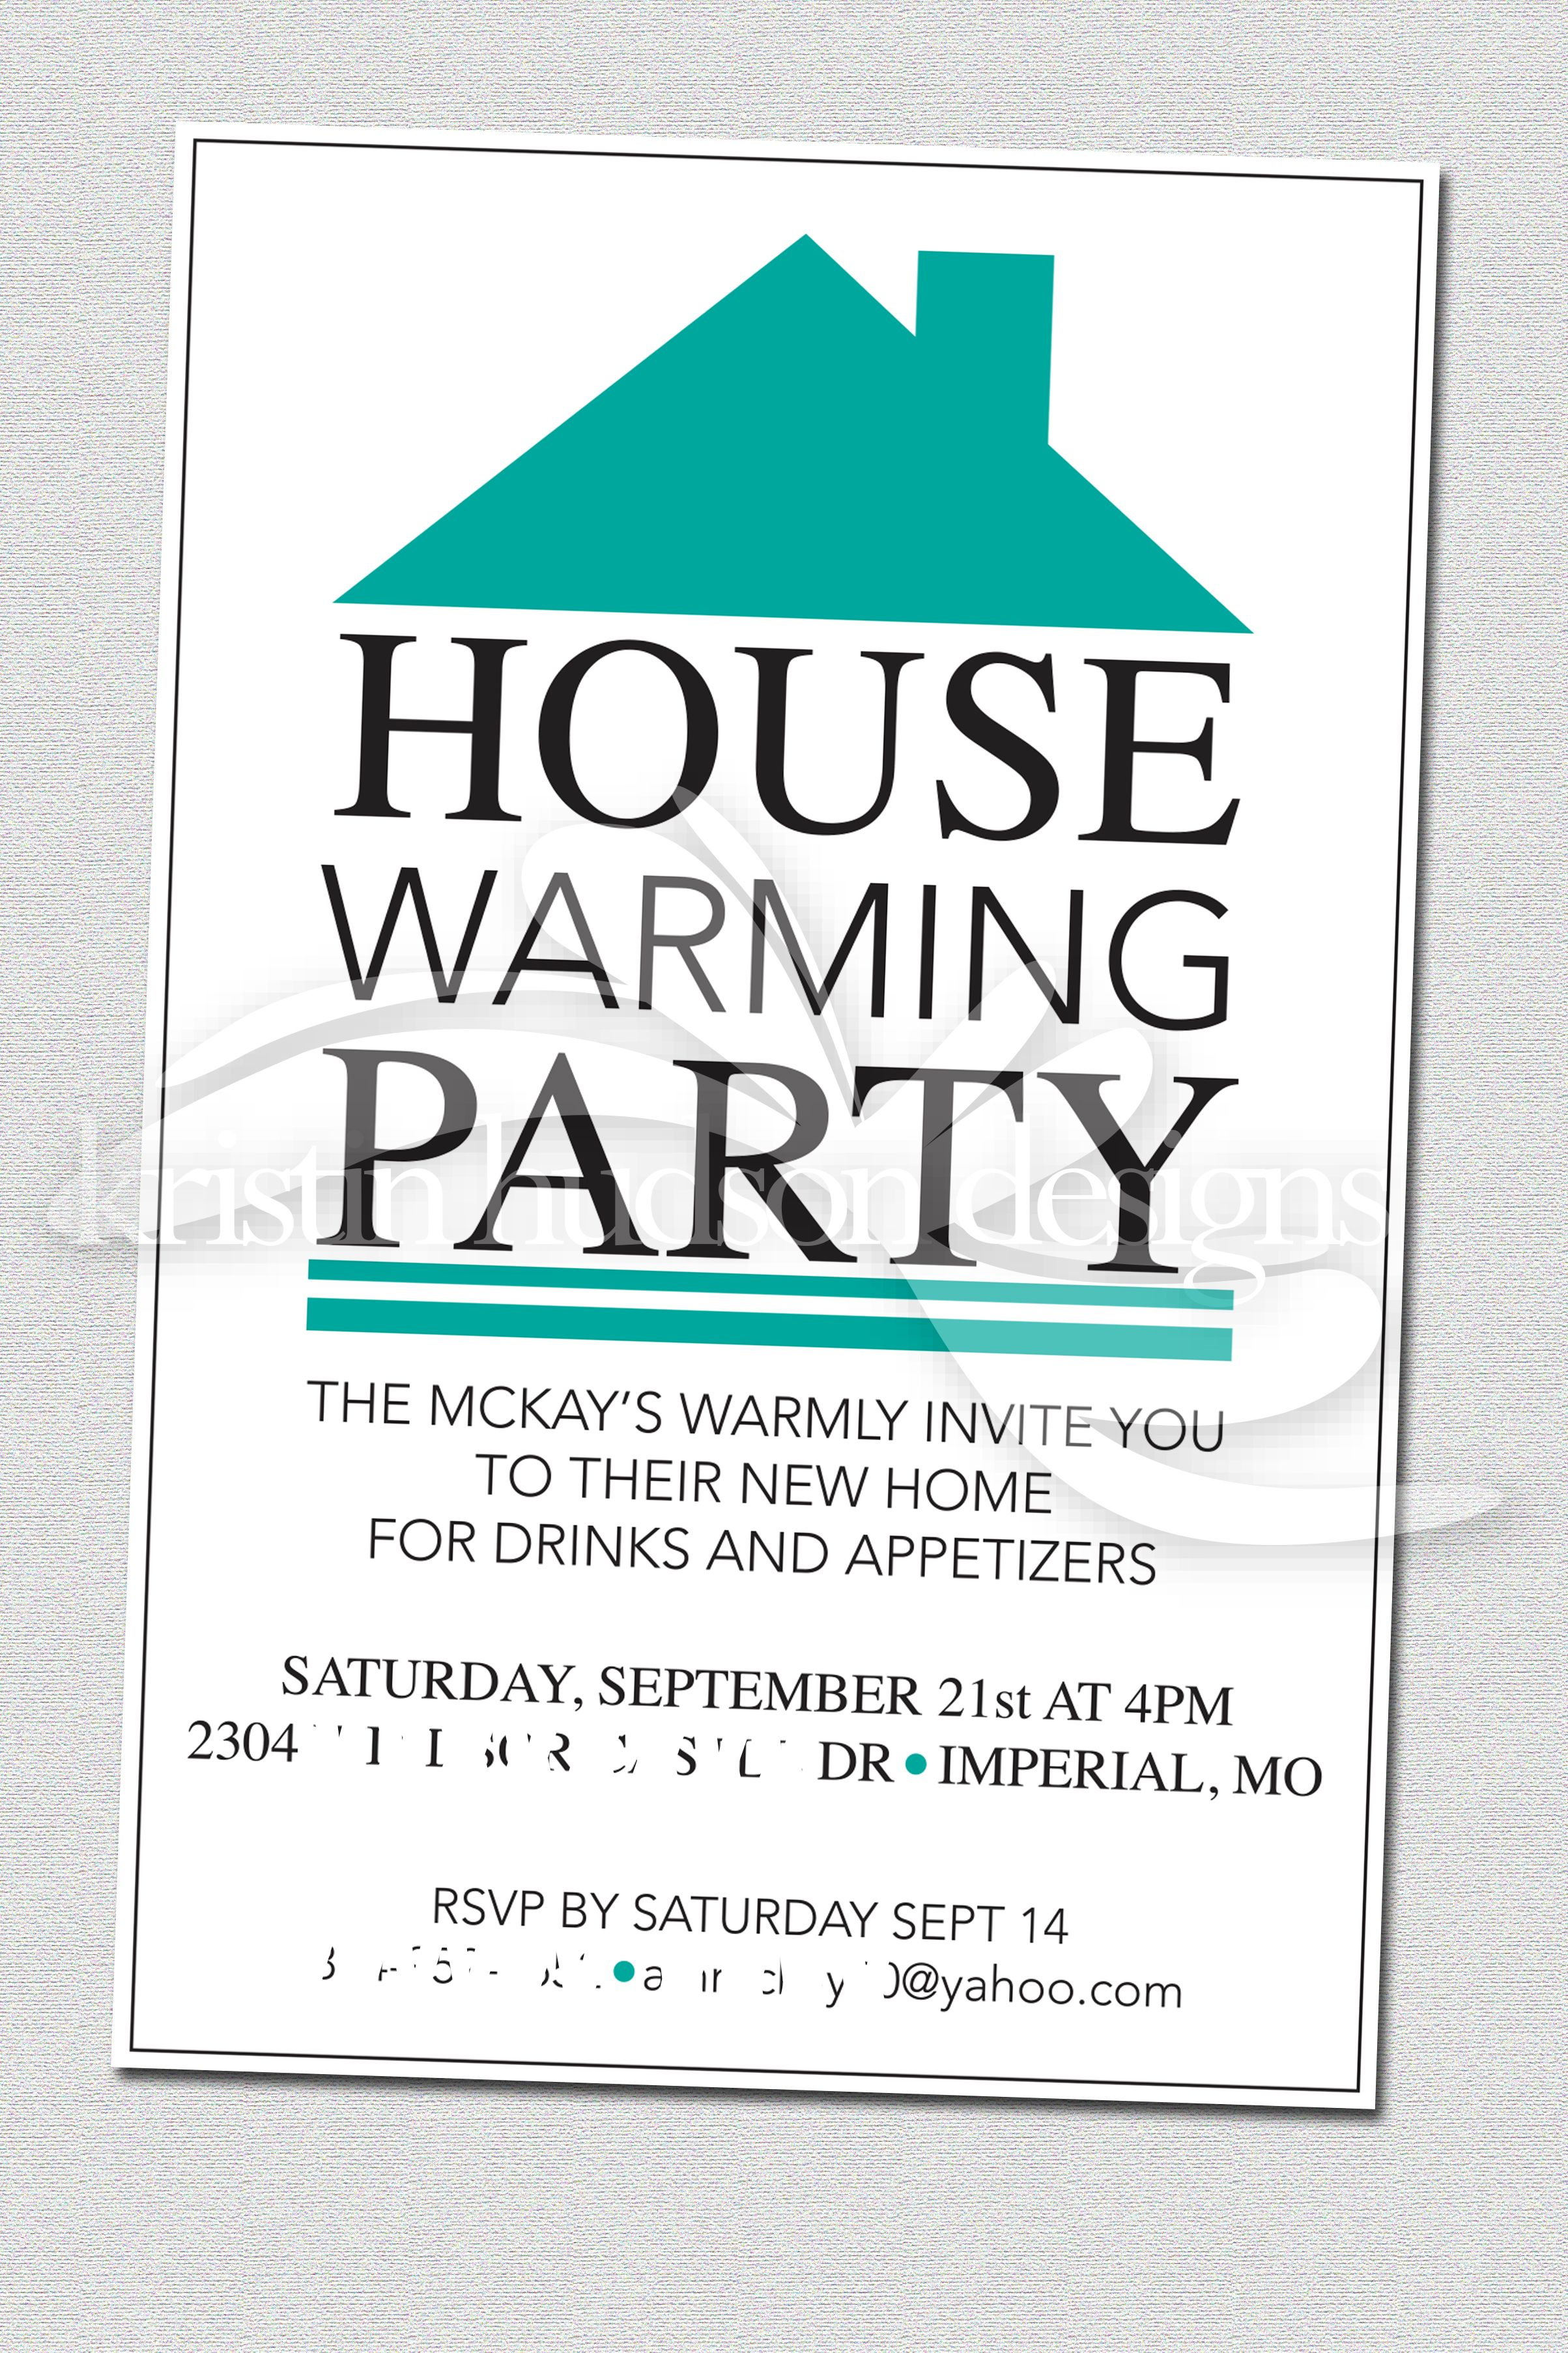 House Warming Party Invite Designs By Kristin Hudson Invitations